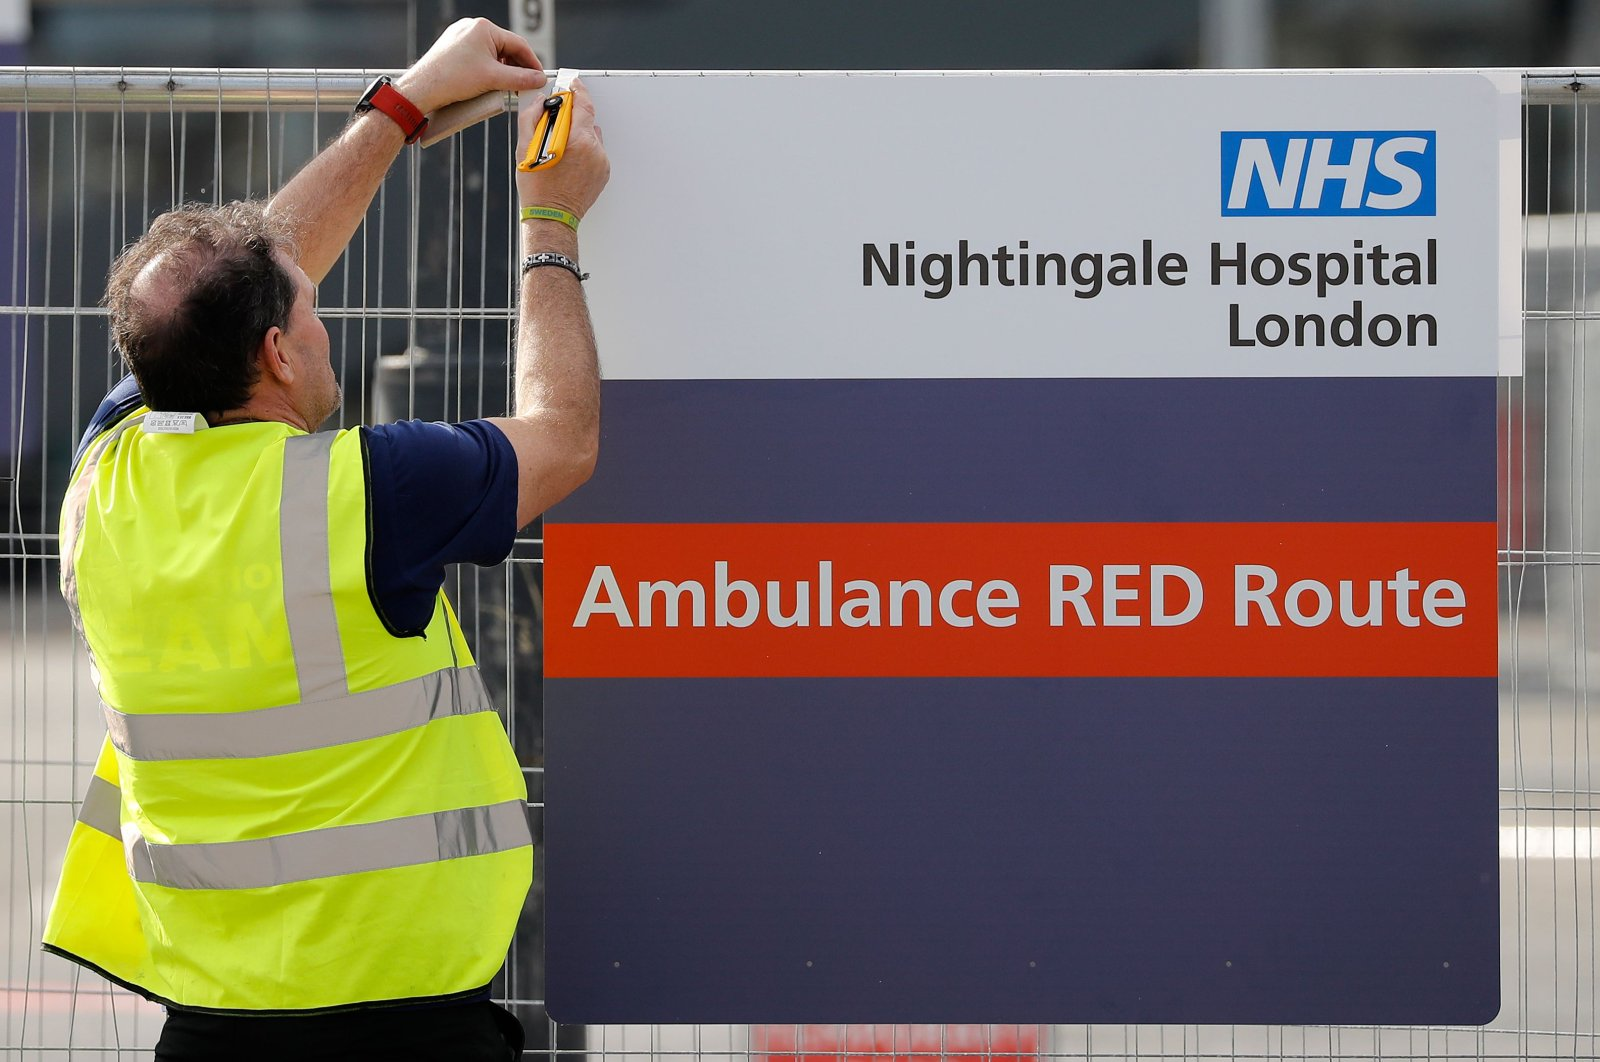 """A worker fixes a new sign to a fence at the ExCeL London exhibition center, which has been transformed into the """"NHS Nightingale"""" field hospital, to help with the novel coronavirus COVID-19 pandemic, in London on Friday, April 3, 2020. (AFP Photo)"""